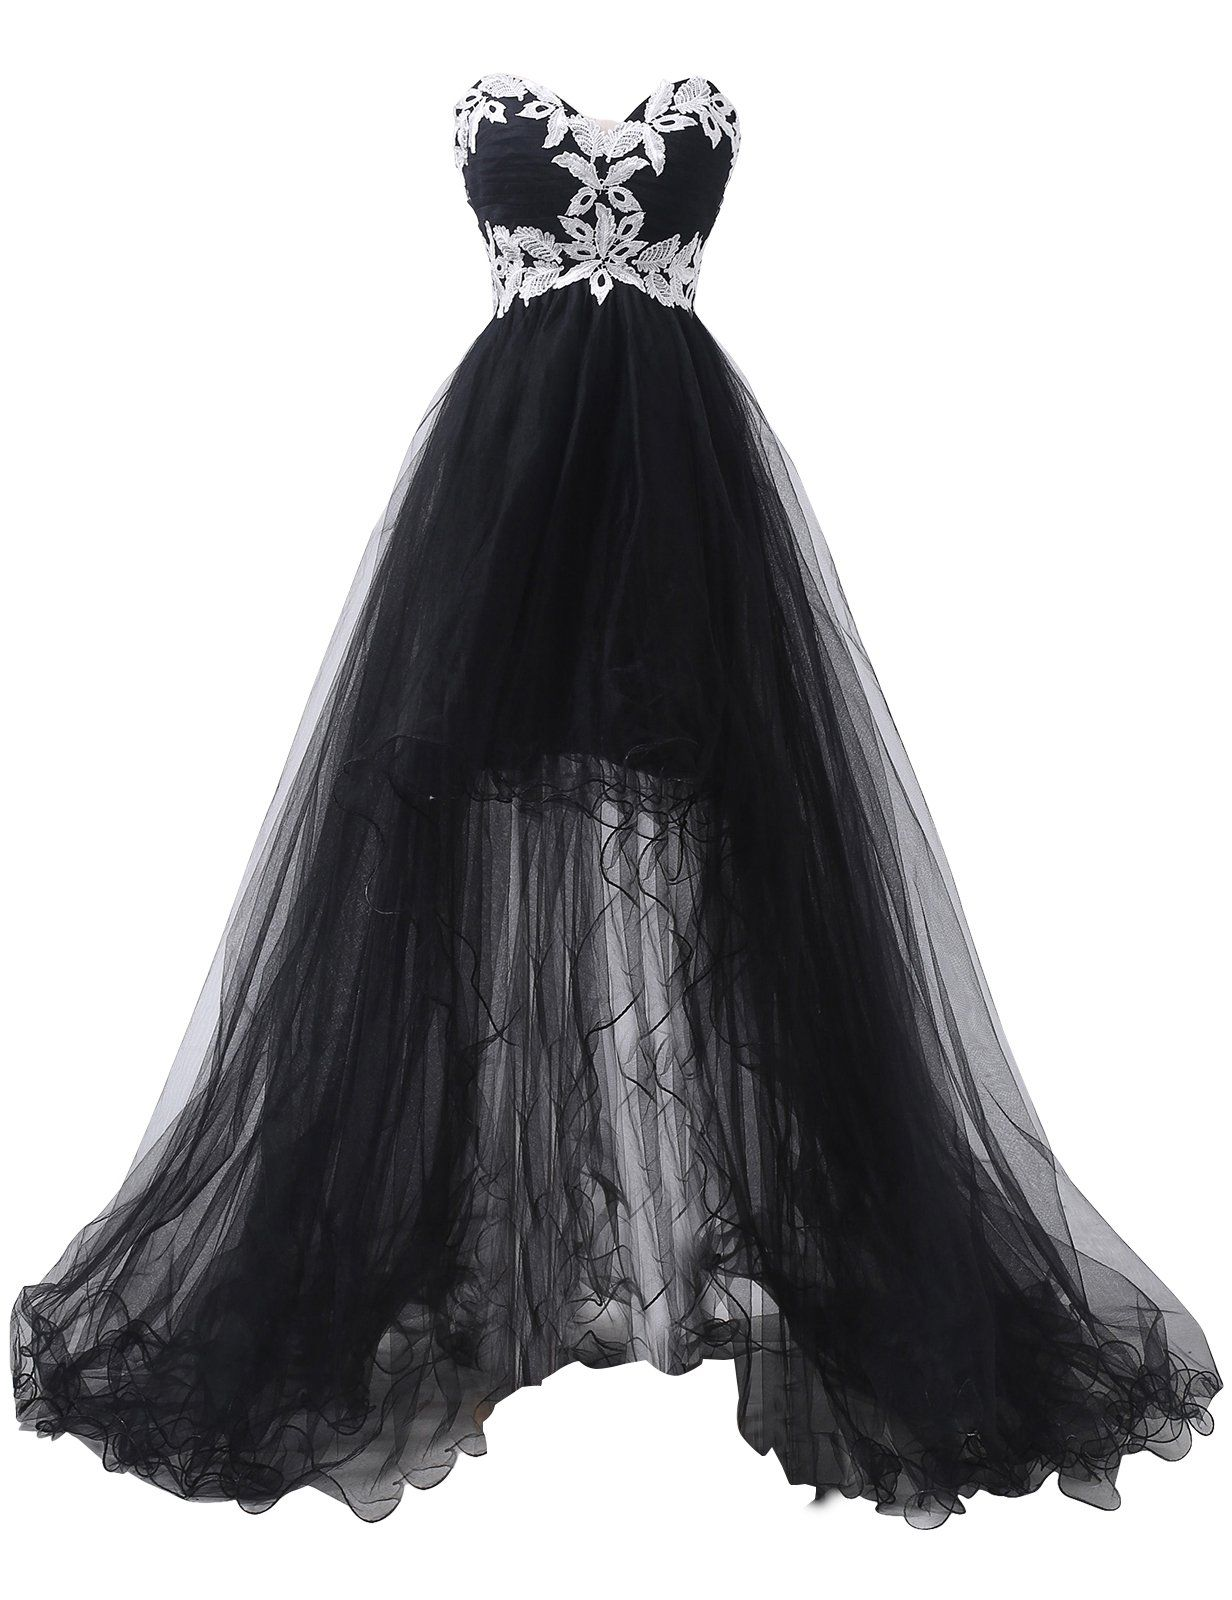 New Black Lace Wedding Dresses Hi-Lo Bridal Ball Gown Prom Party Evening Dress